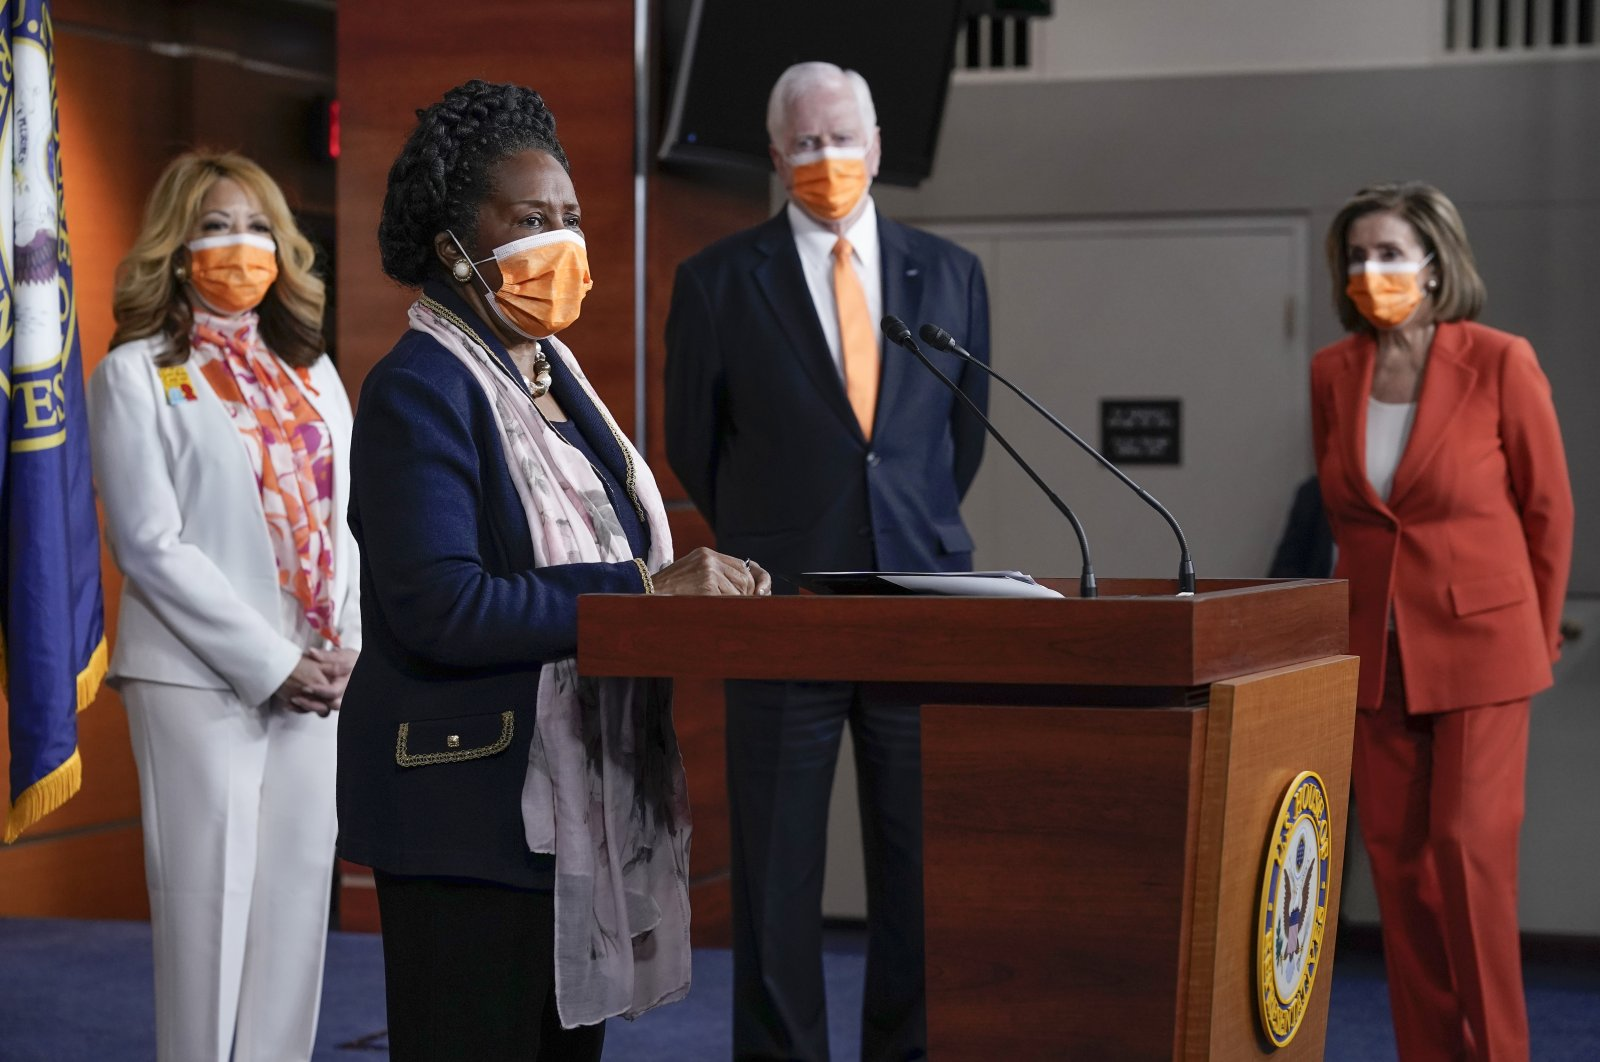 Rep. Sheila Jackson Lee speaks to reporters as she is joined by, from left, Rep. Lucy McBath, Rep. Mike Thompson and Speaker of the House Nancy Pelosi, at a news conference on passage of gun violence prevention legislation, at the Capitol in Washington, U.S., March 11, 2021. (AP Photo)